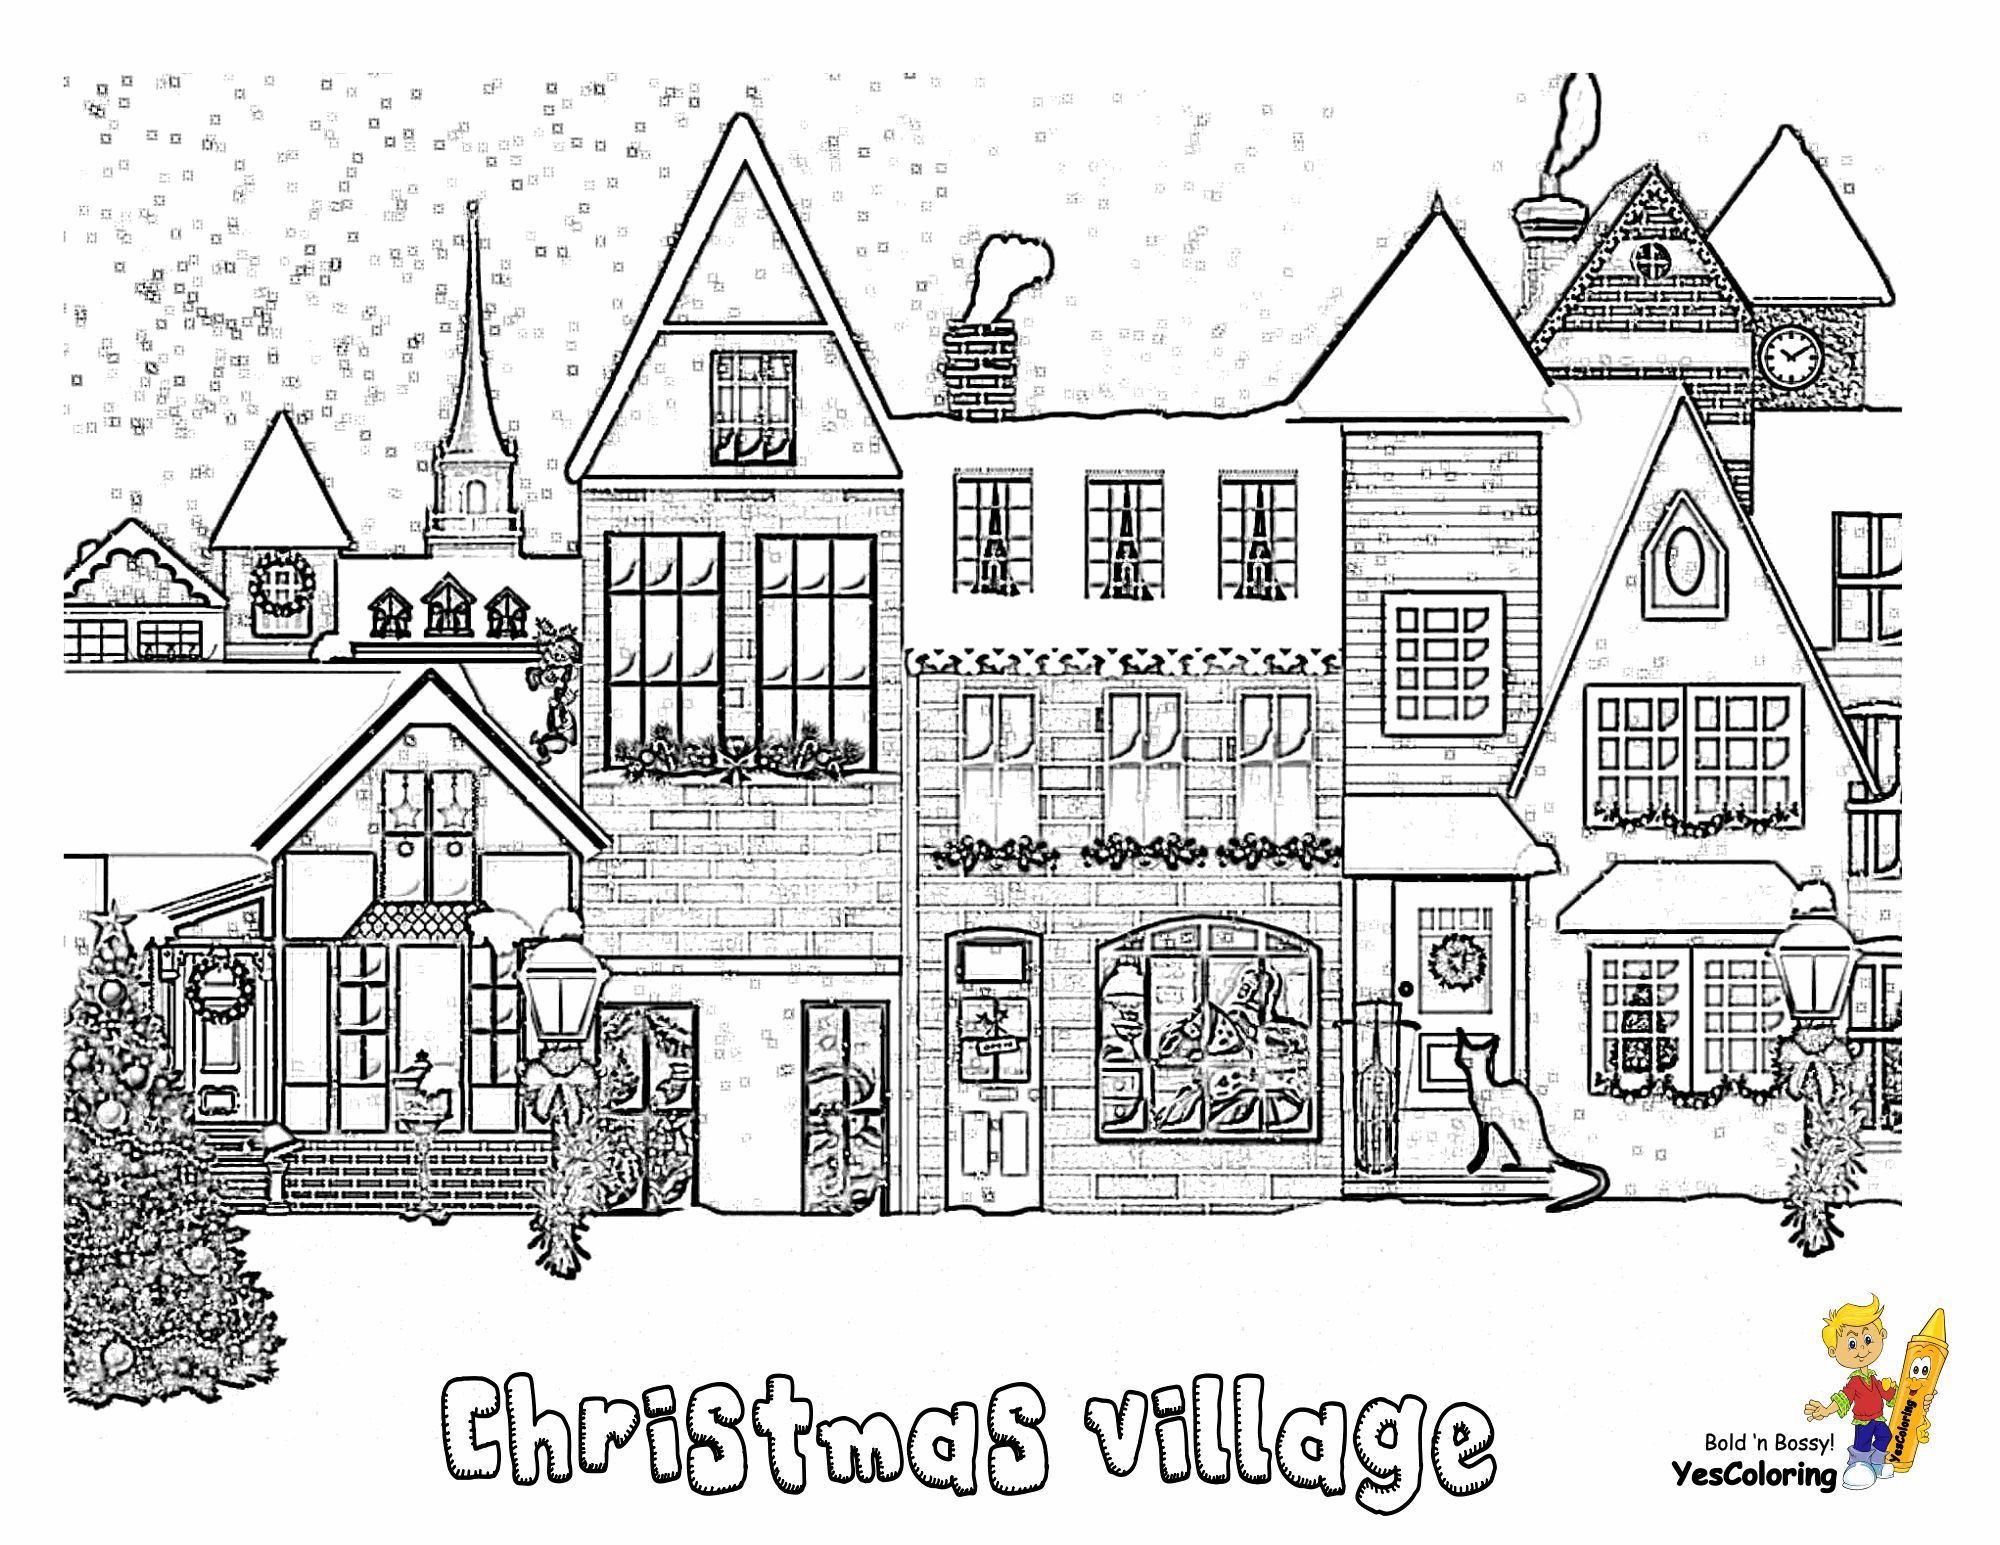 Print Out This Christmas Village Coloring Page Wow Tell Other Coloring Christmas Tree Coloring Page Christmas Coloring Pages Free Christmas Coloring Pages